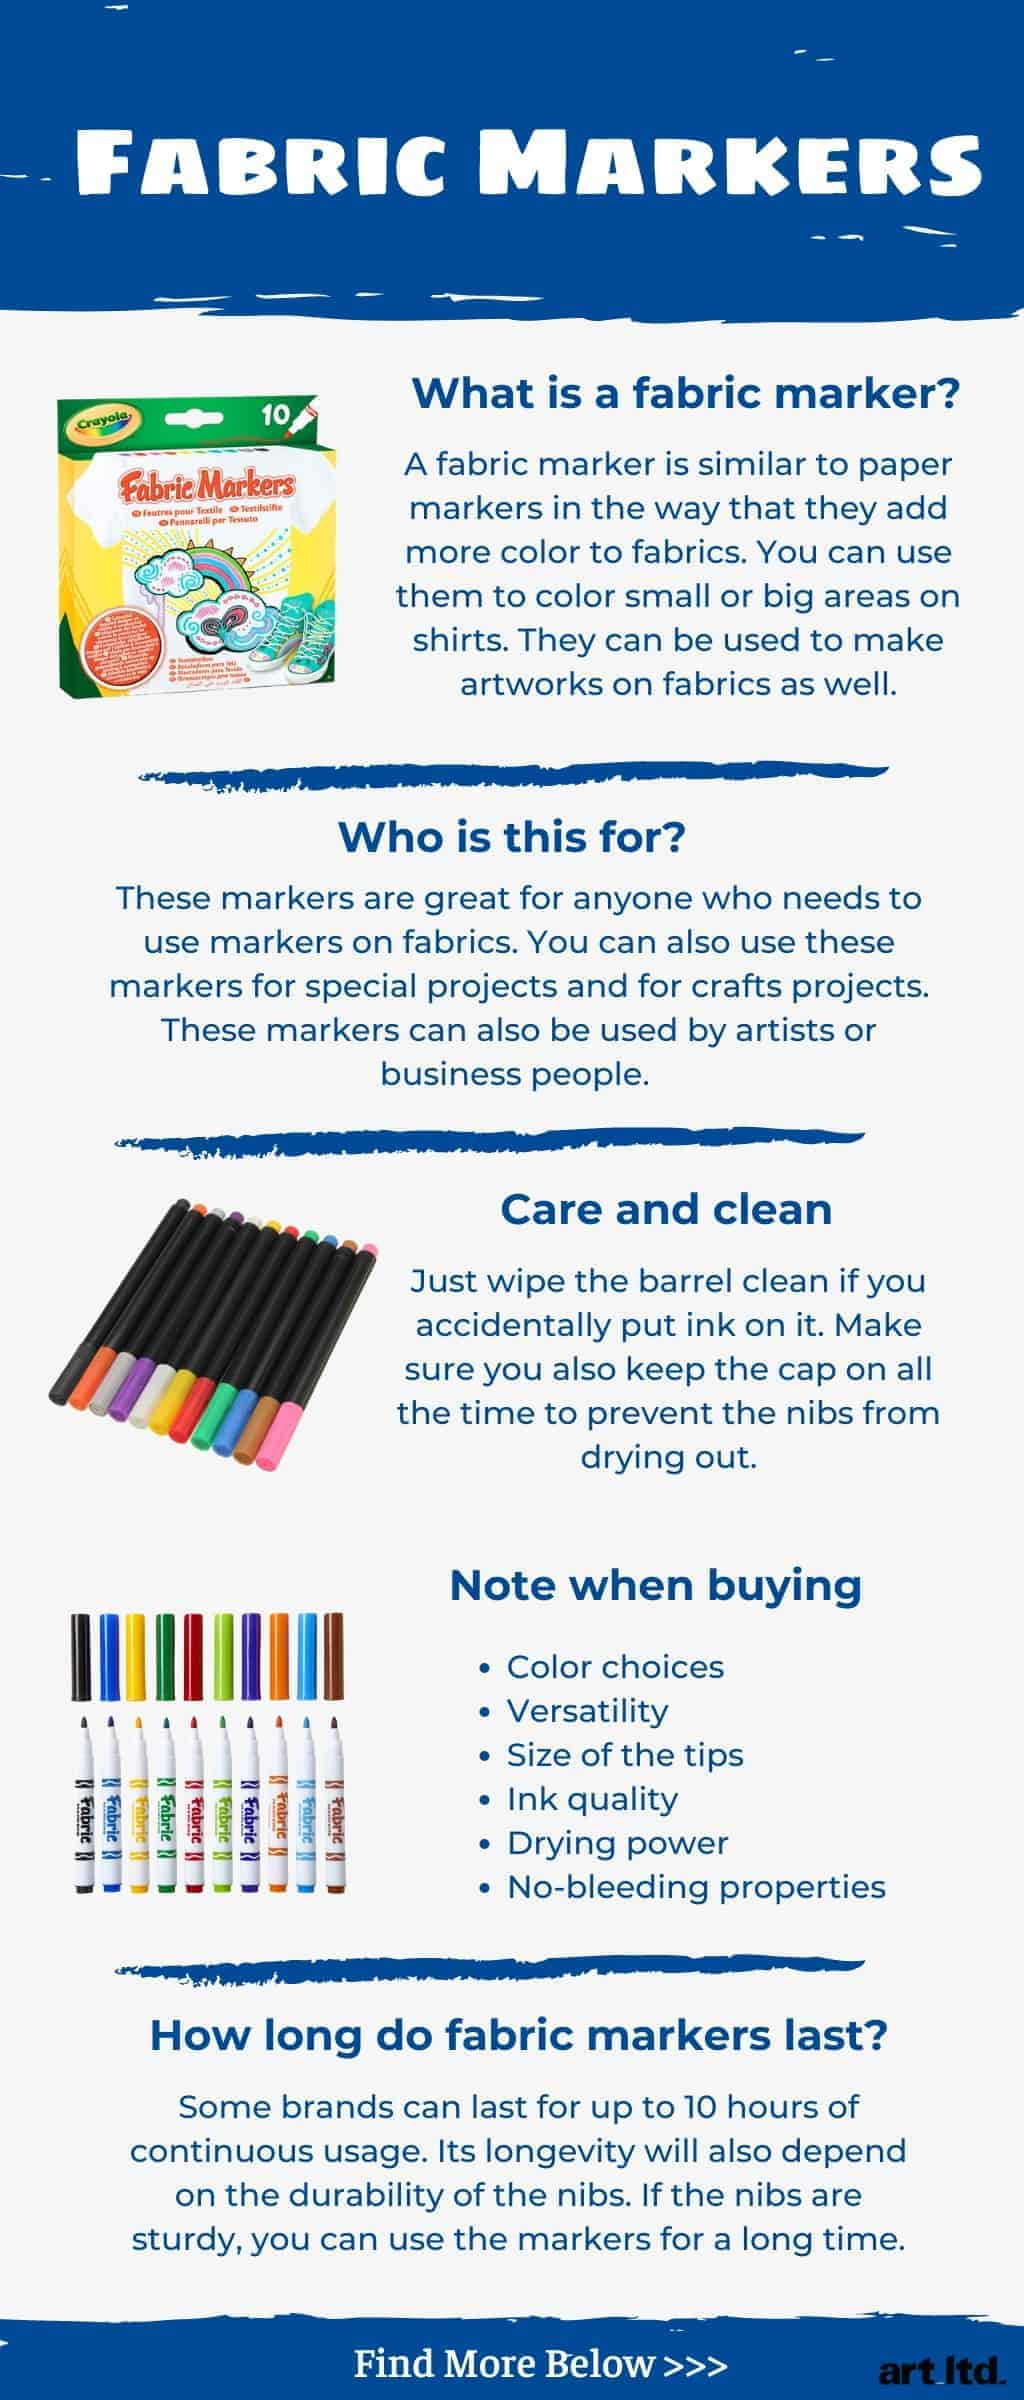 fabric-markers-for-cotton